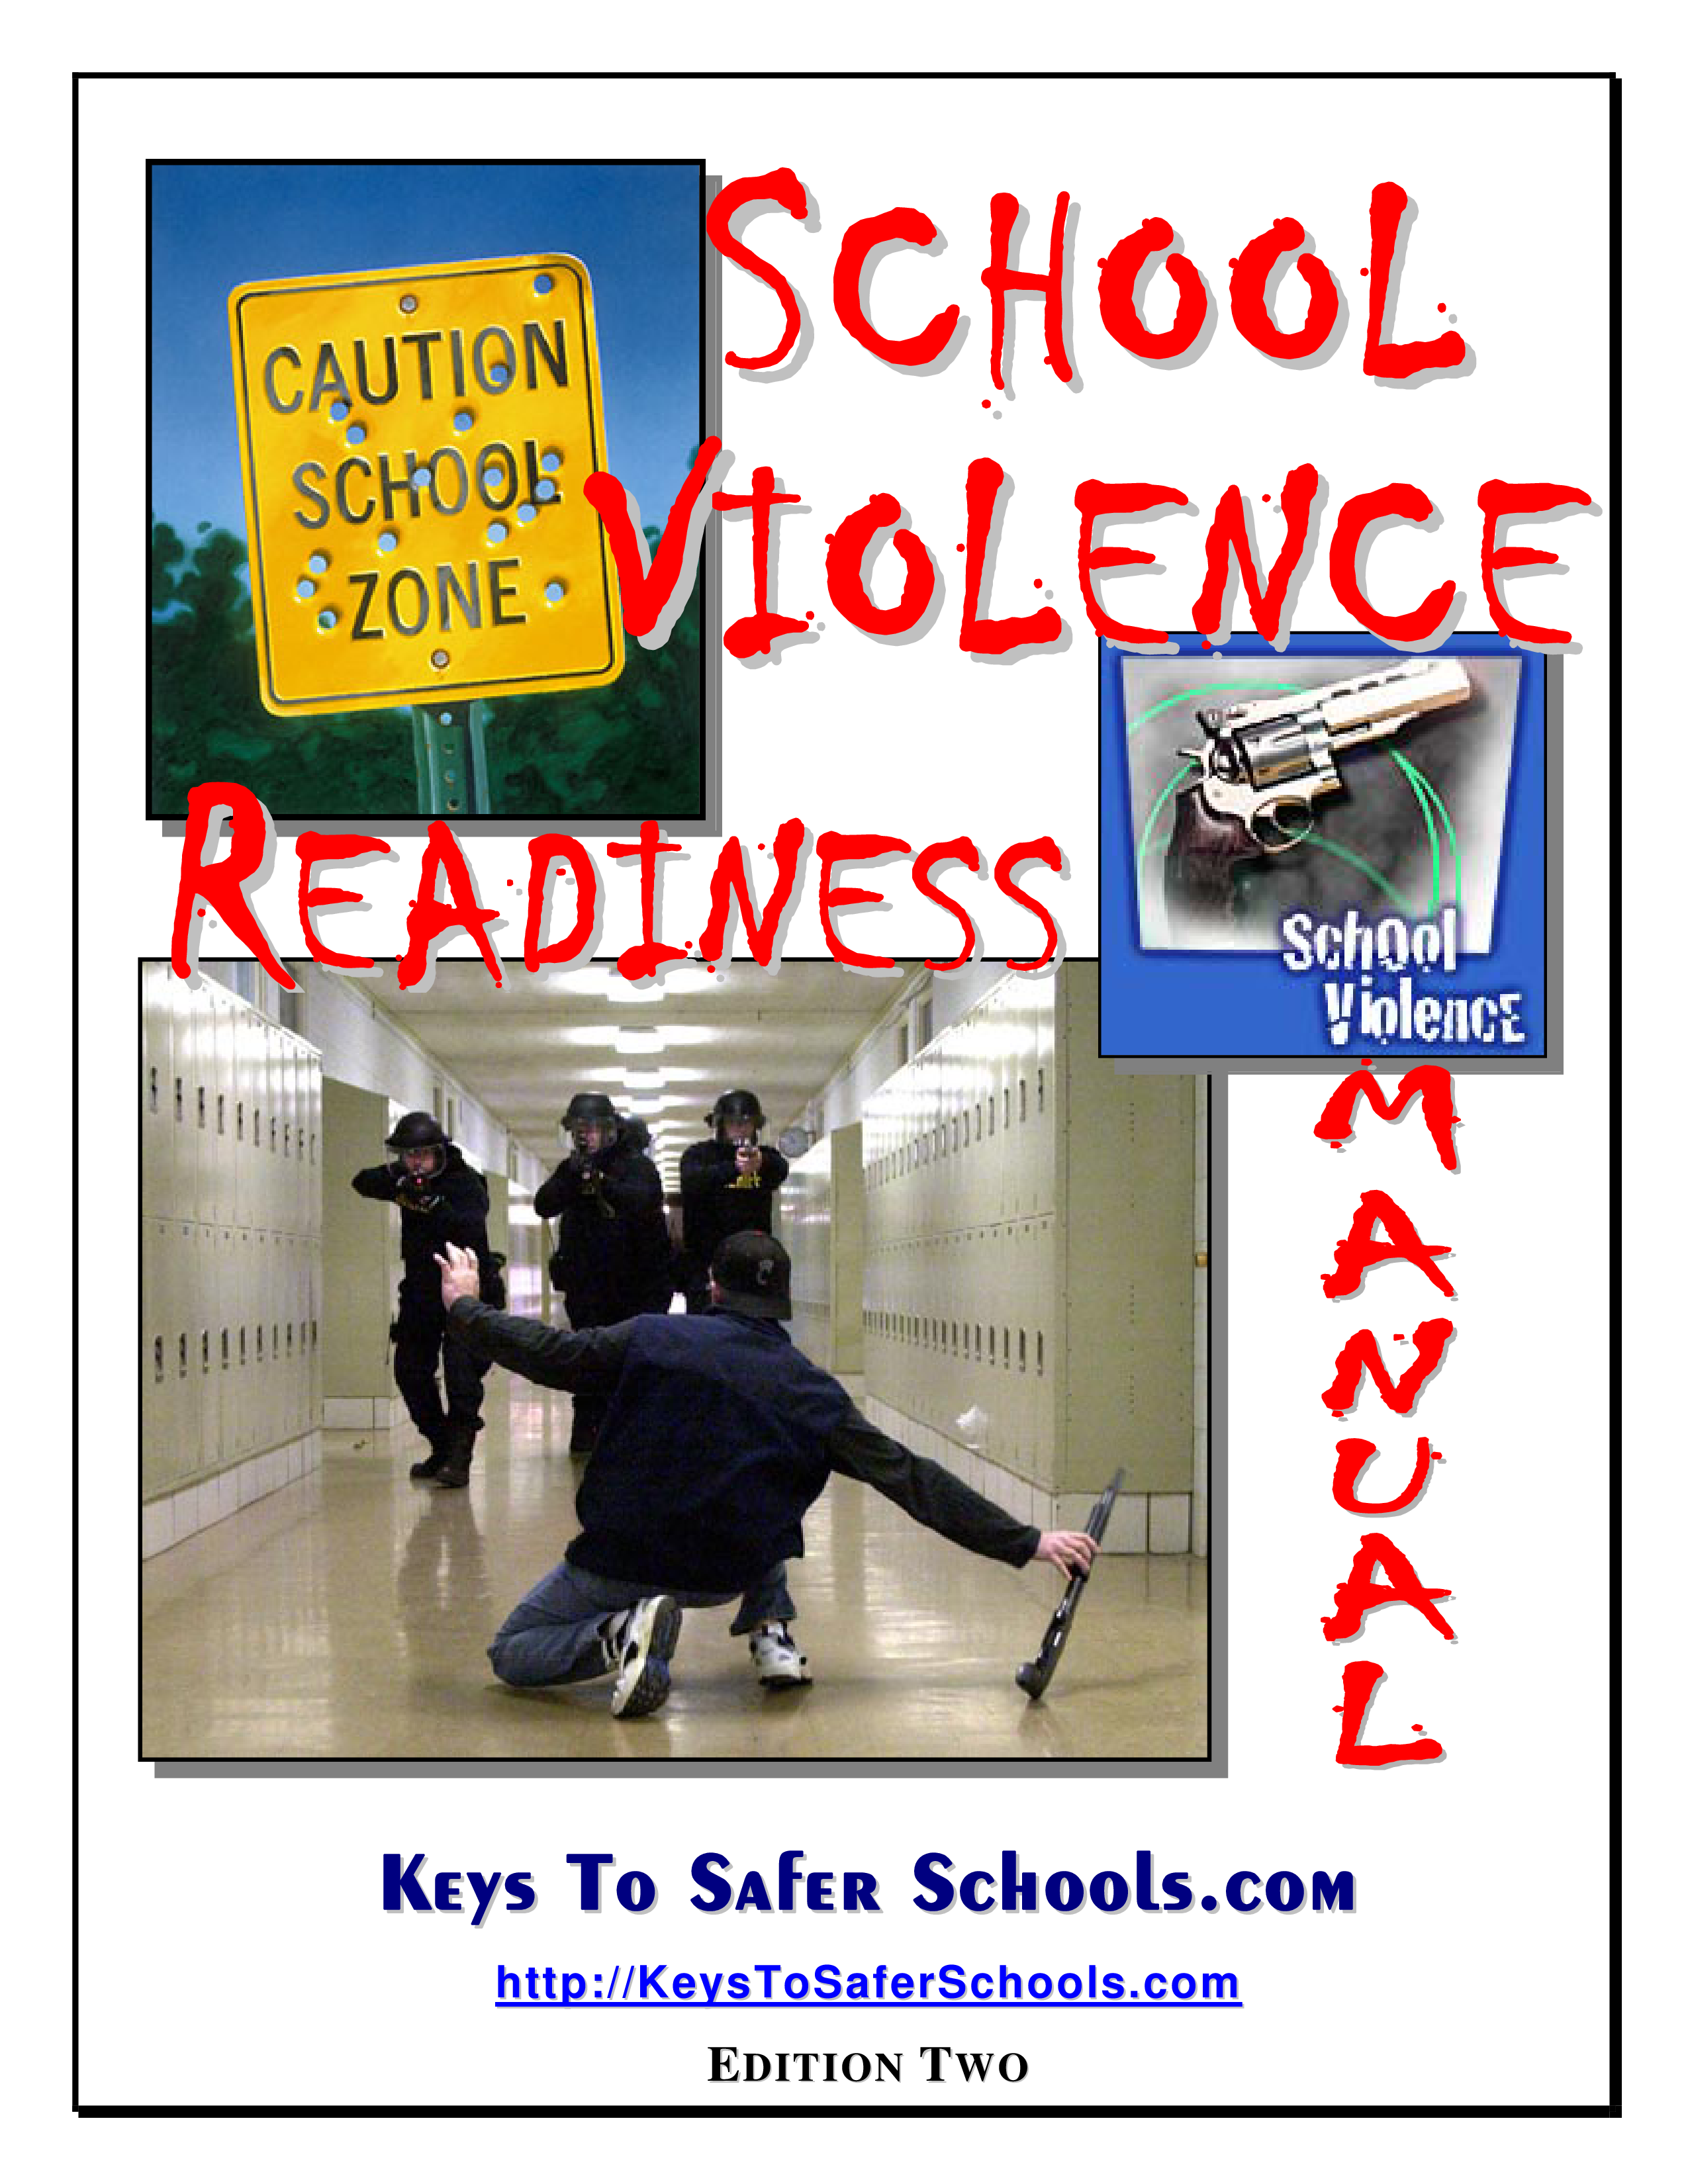 School Violence Readiness Training